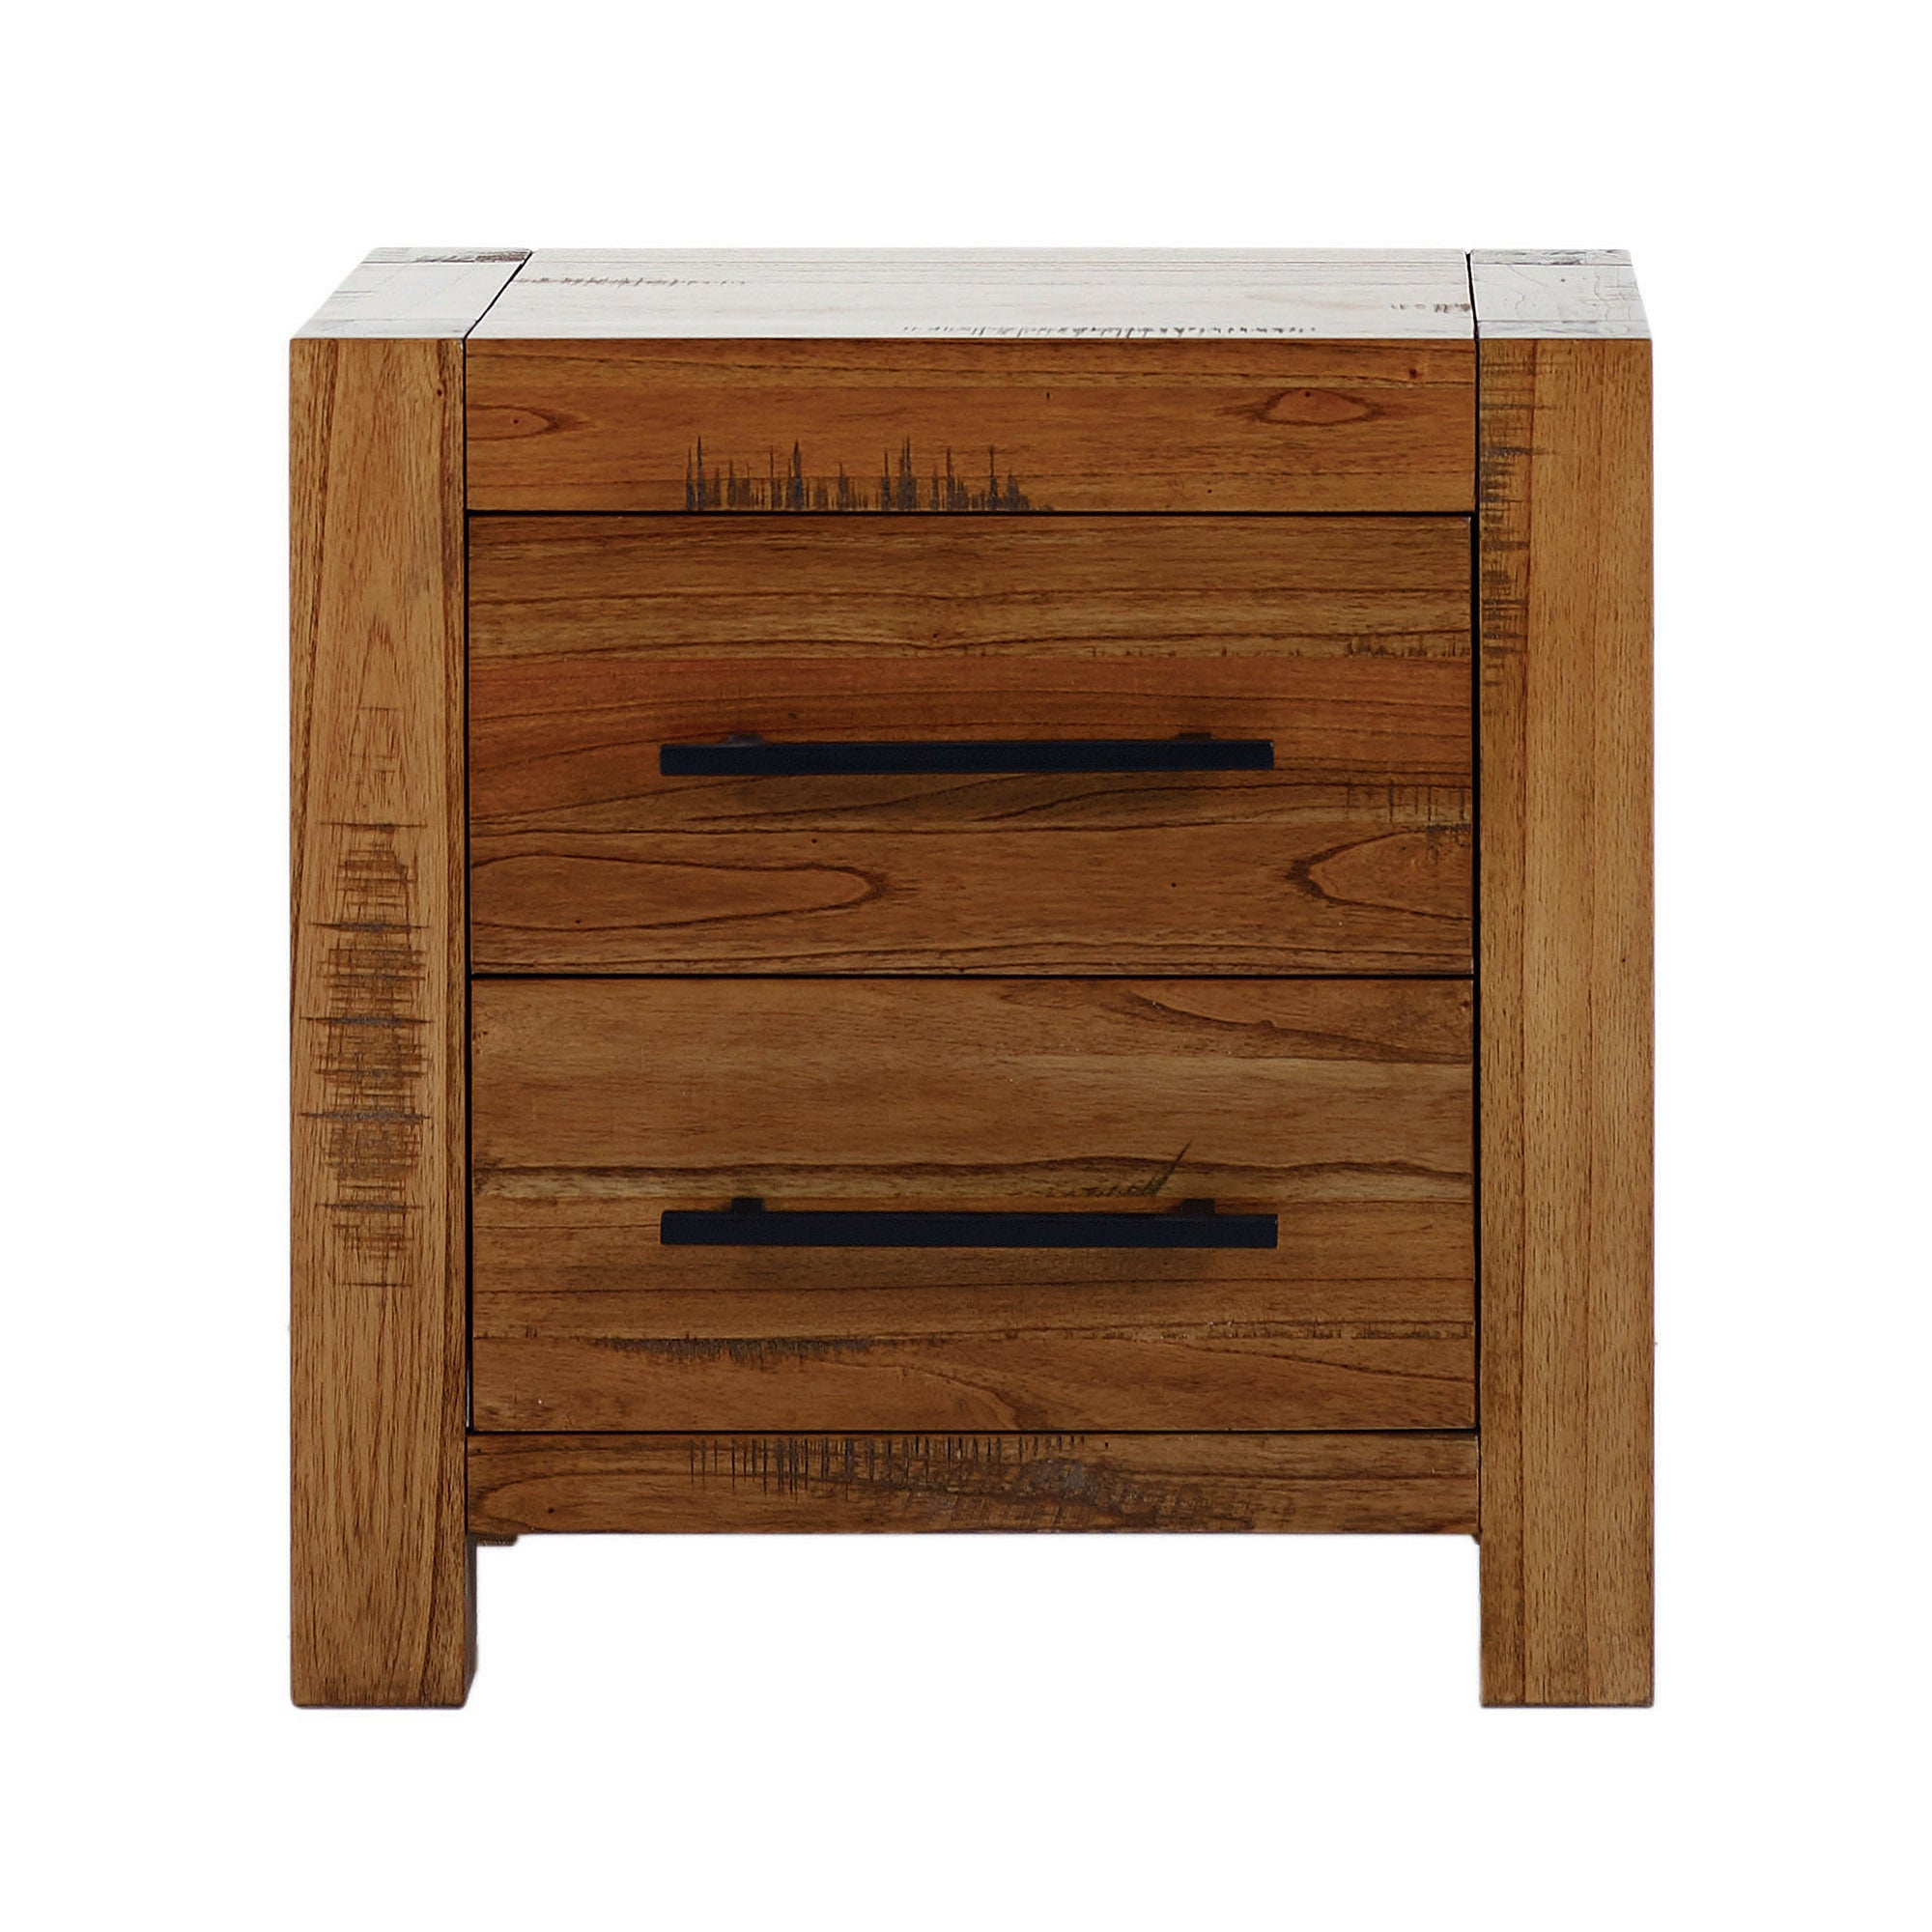 Columbia Acacia Dark Wood 2 Drawer Bedside Table